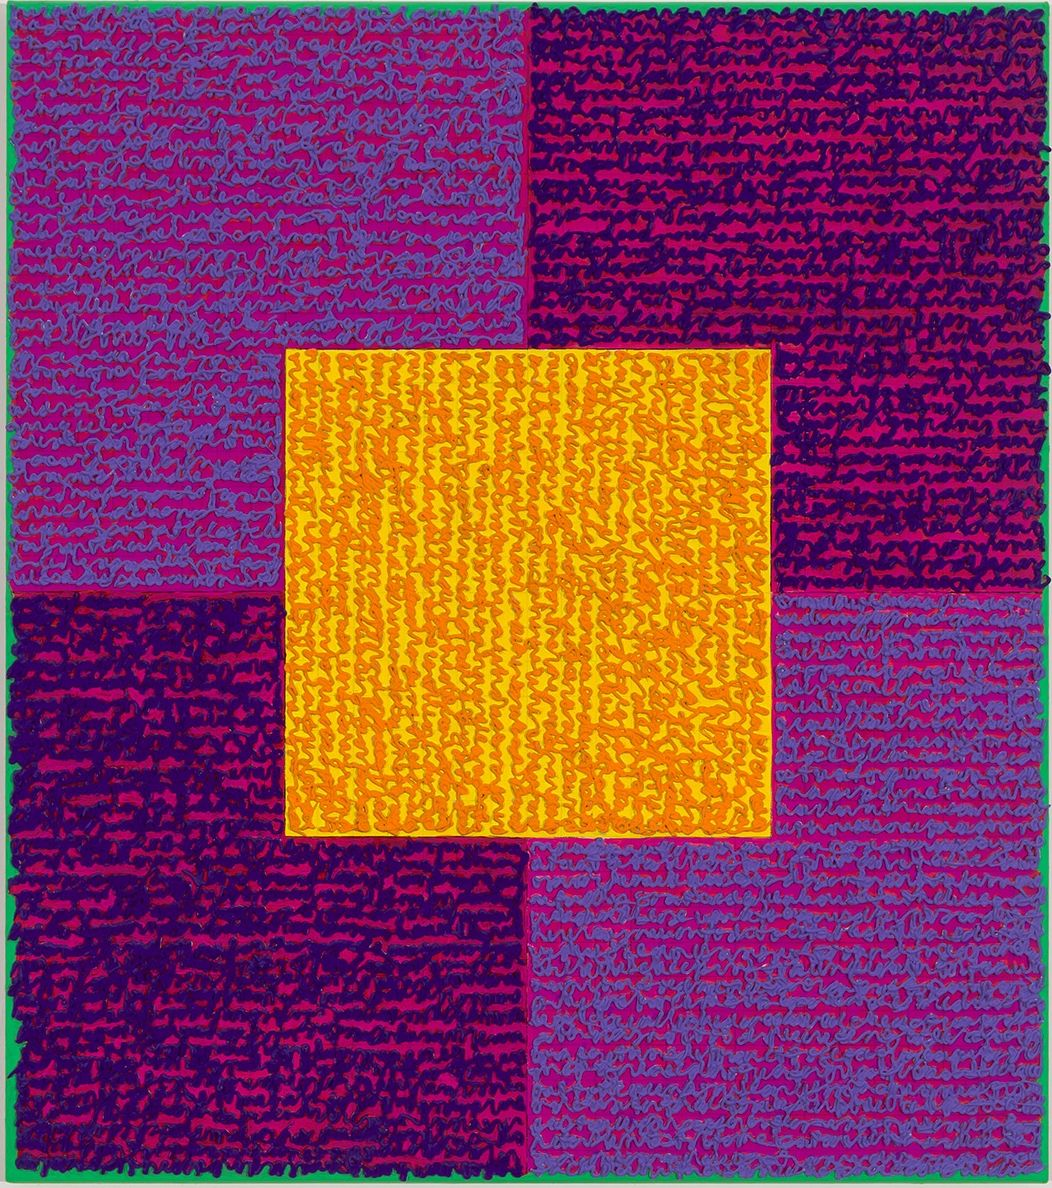 ,Louise P. Sloane, VVPPO, 2015, Acrylic paint and pastes on aluminum panel, 34 x 30 inches, Signed, titled and dated on verso, four rectangles and a central square (purple and violet with yellow) and personal text written over the squares to create three dimensional texture. Louise P. Sloane has been creating abstract paintings since 1974.